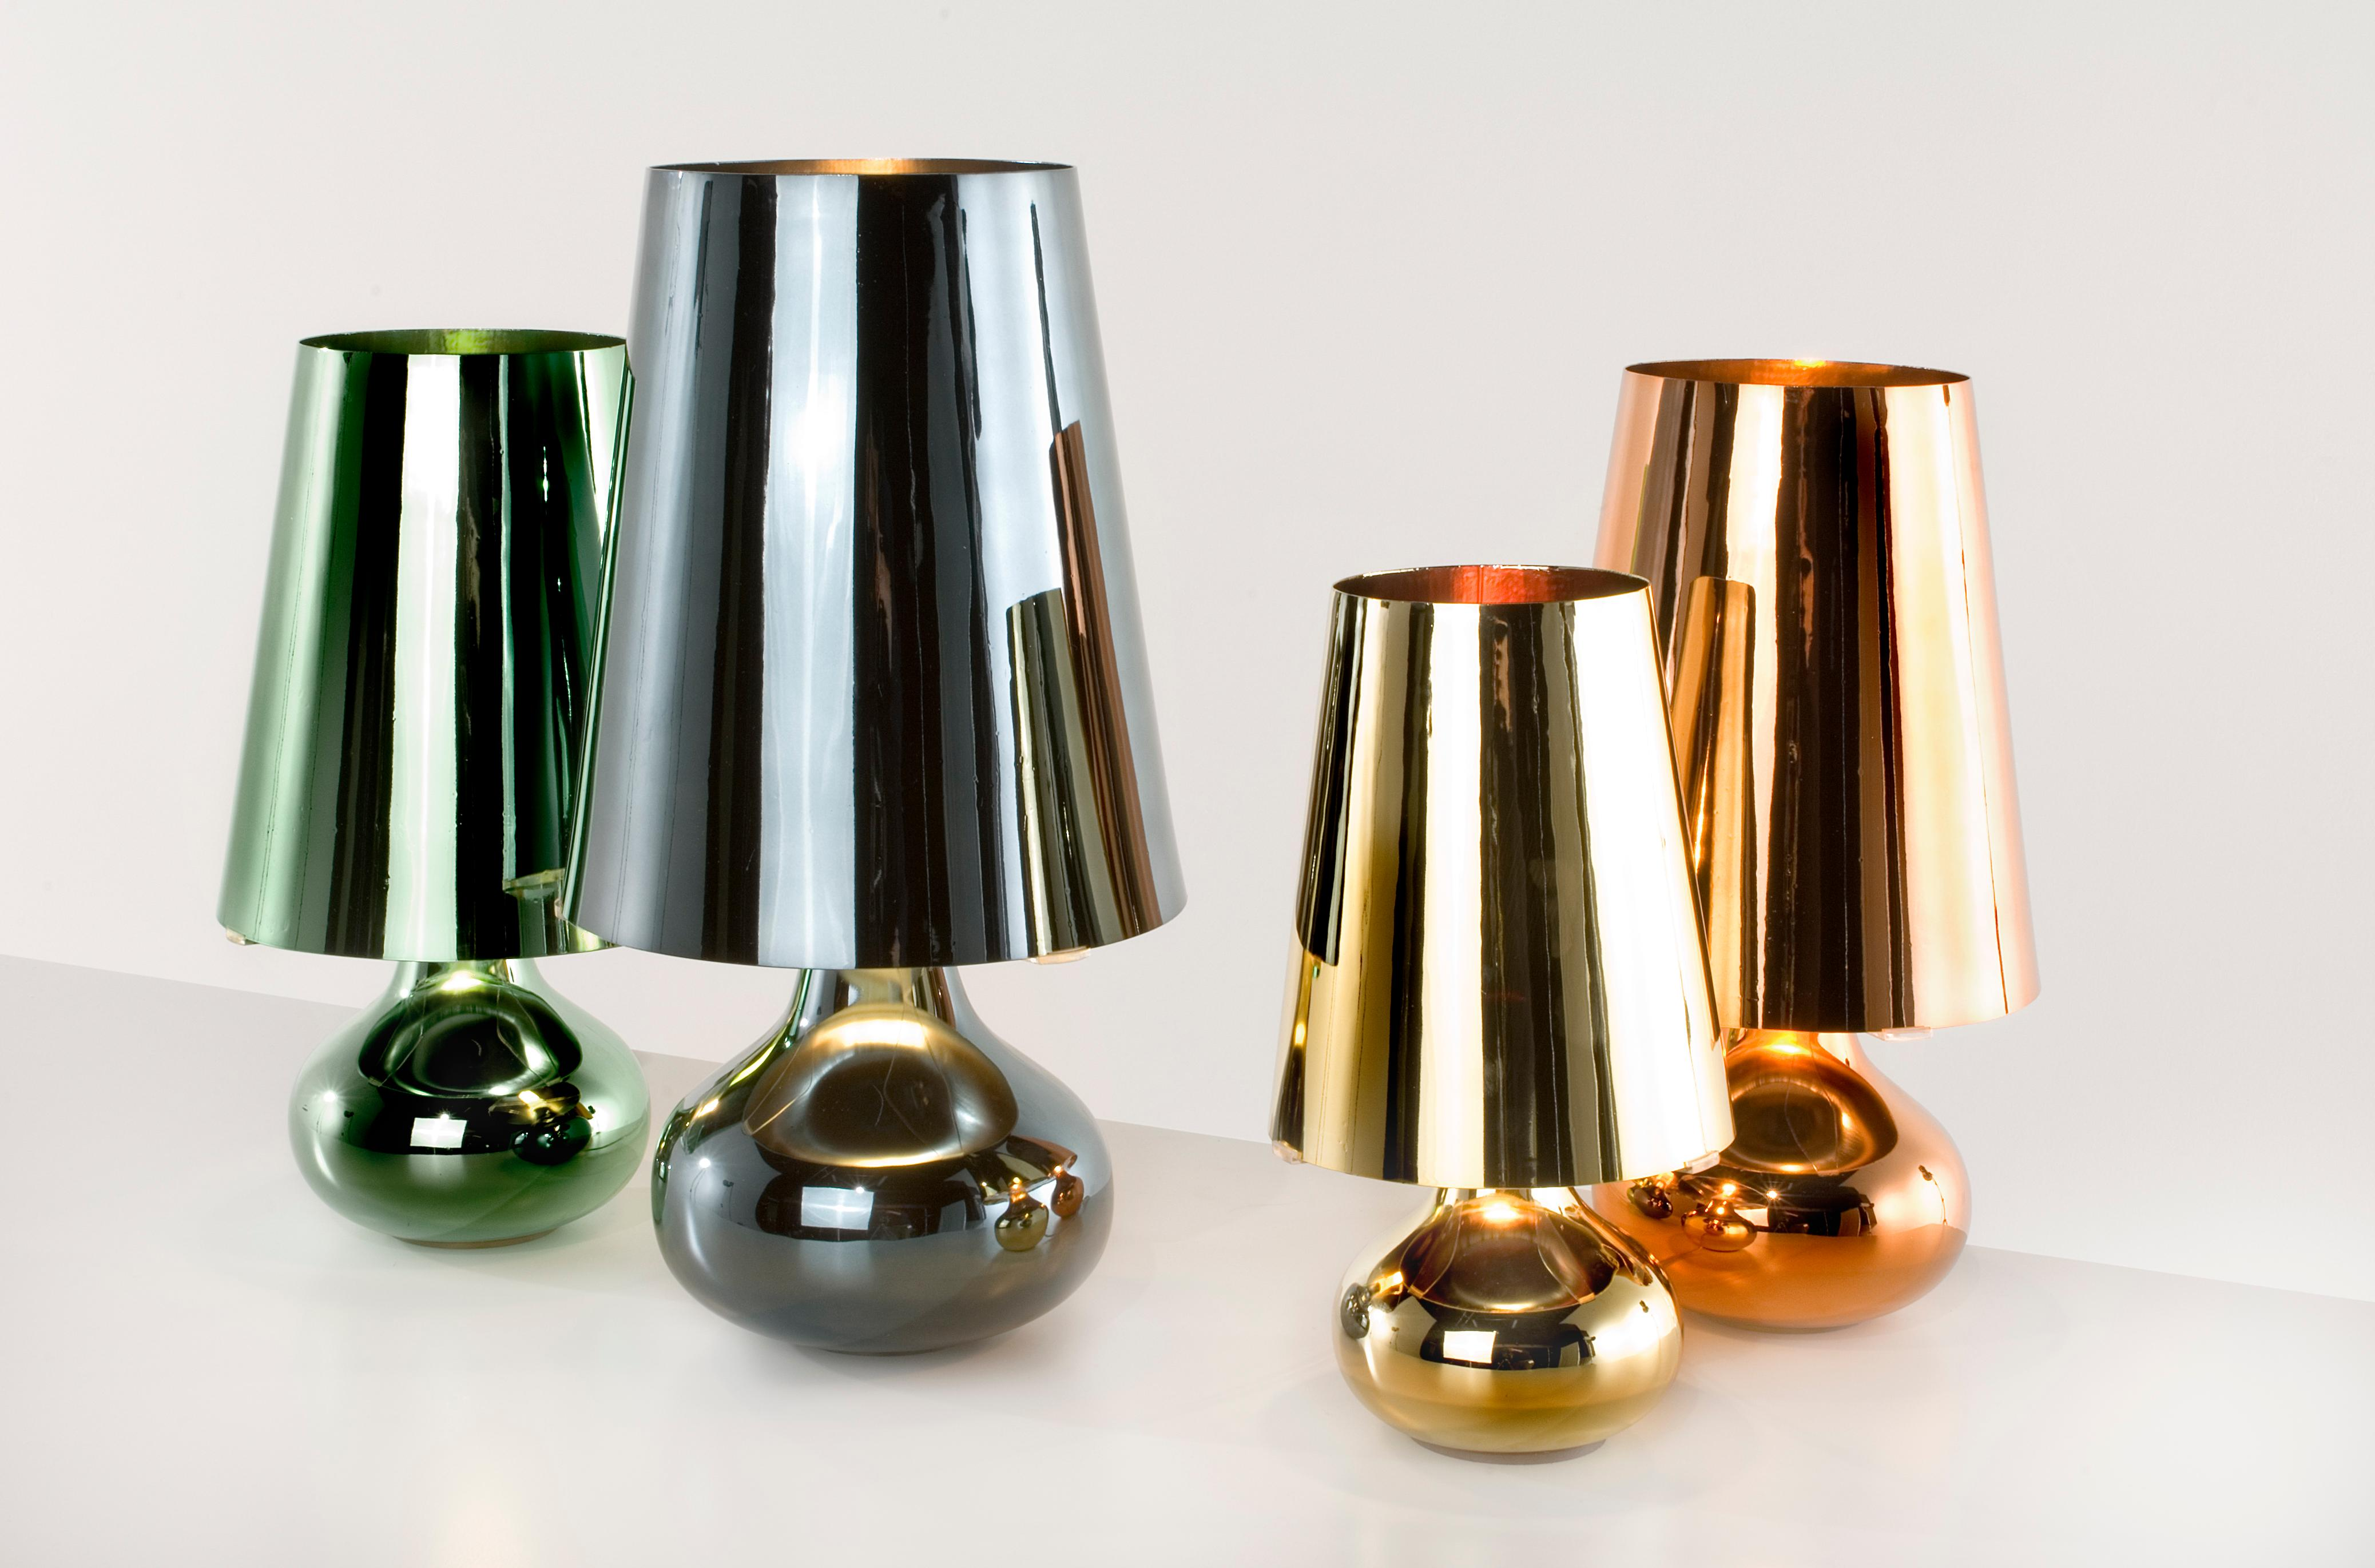 Kartell Bourgie Lamp Sale Kartell Cindy Lamp In Gun Metal By Ferruccio Laviani For